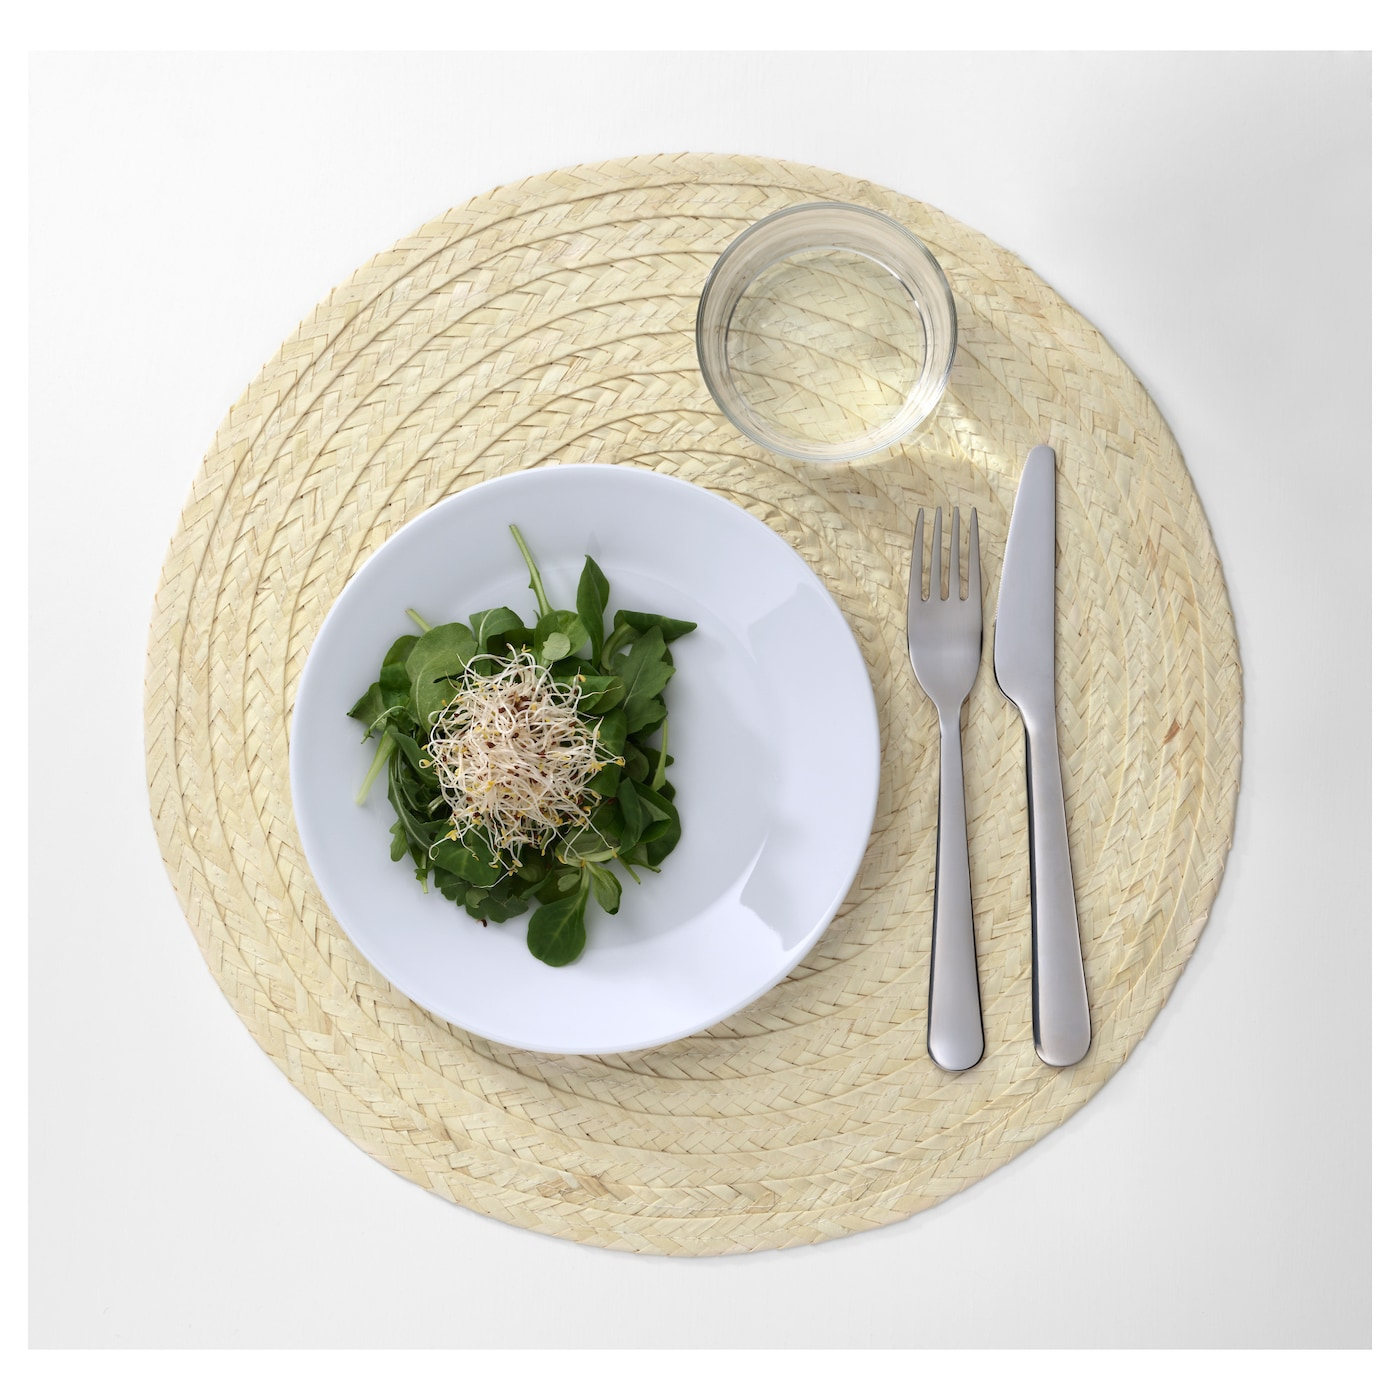 IKEA SLUTEN place mat Protects the table top surface and reduces noise from plates and cutlery.